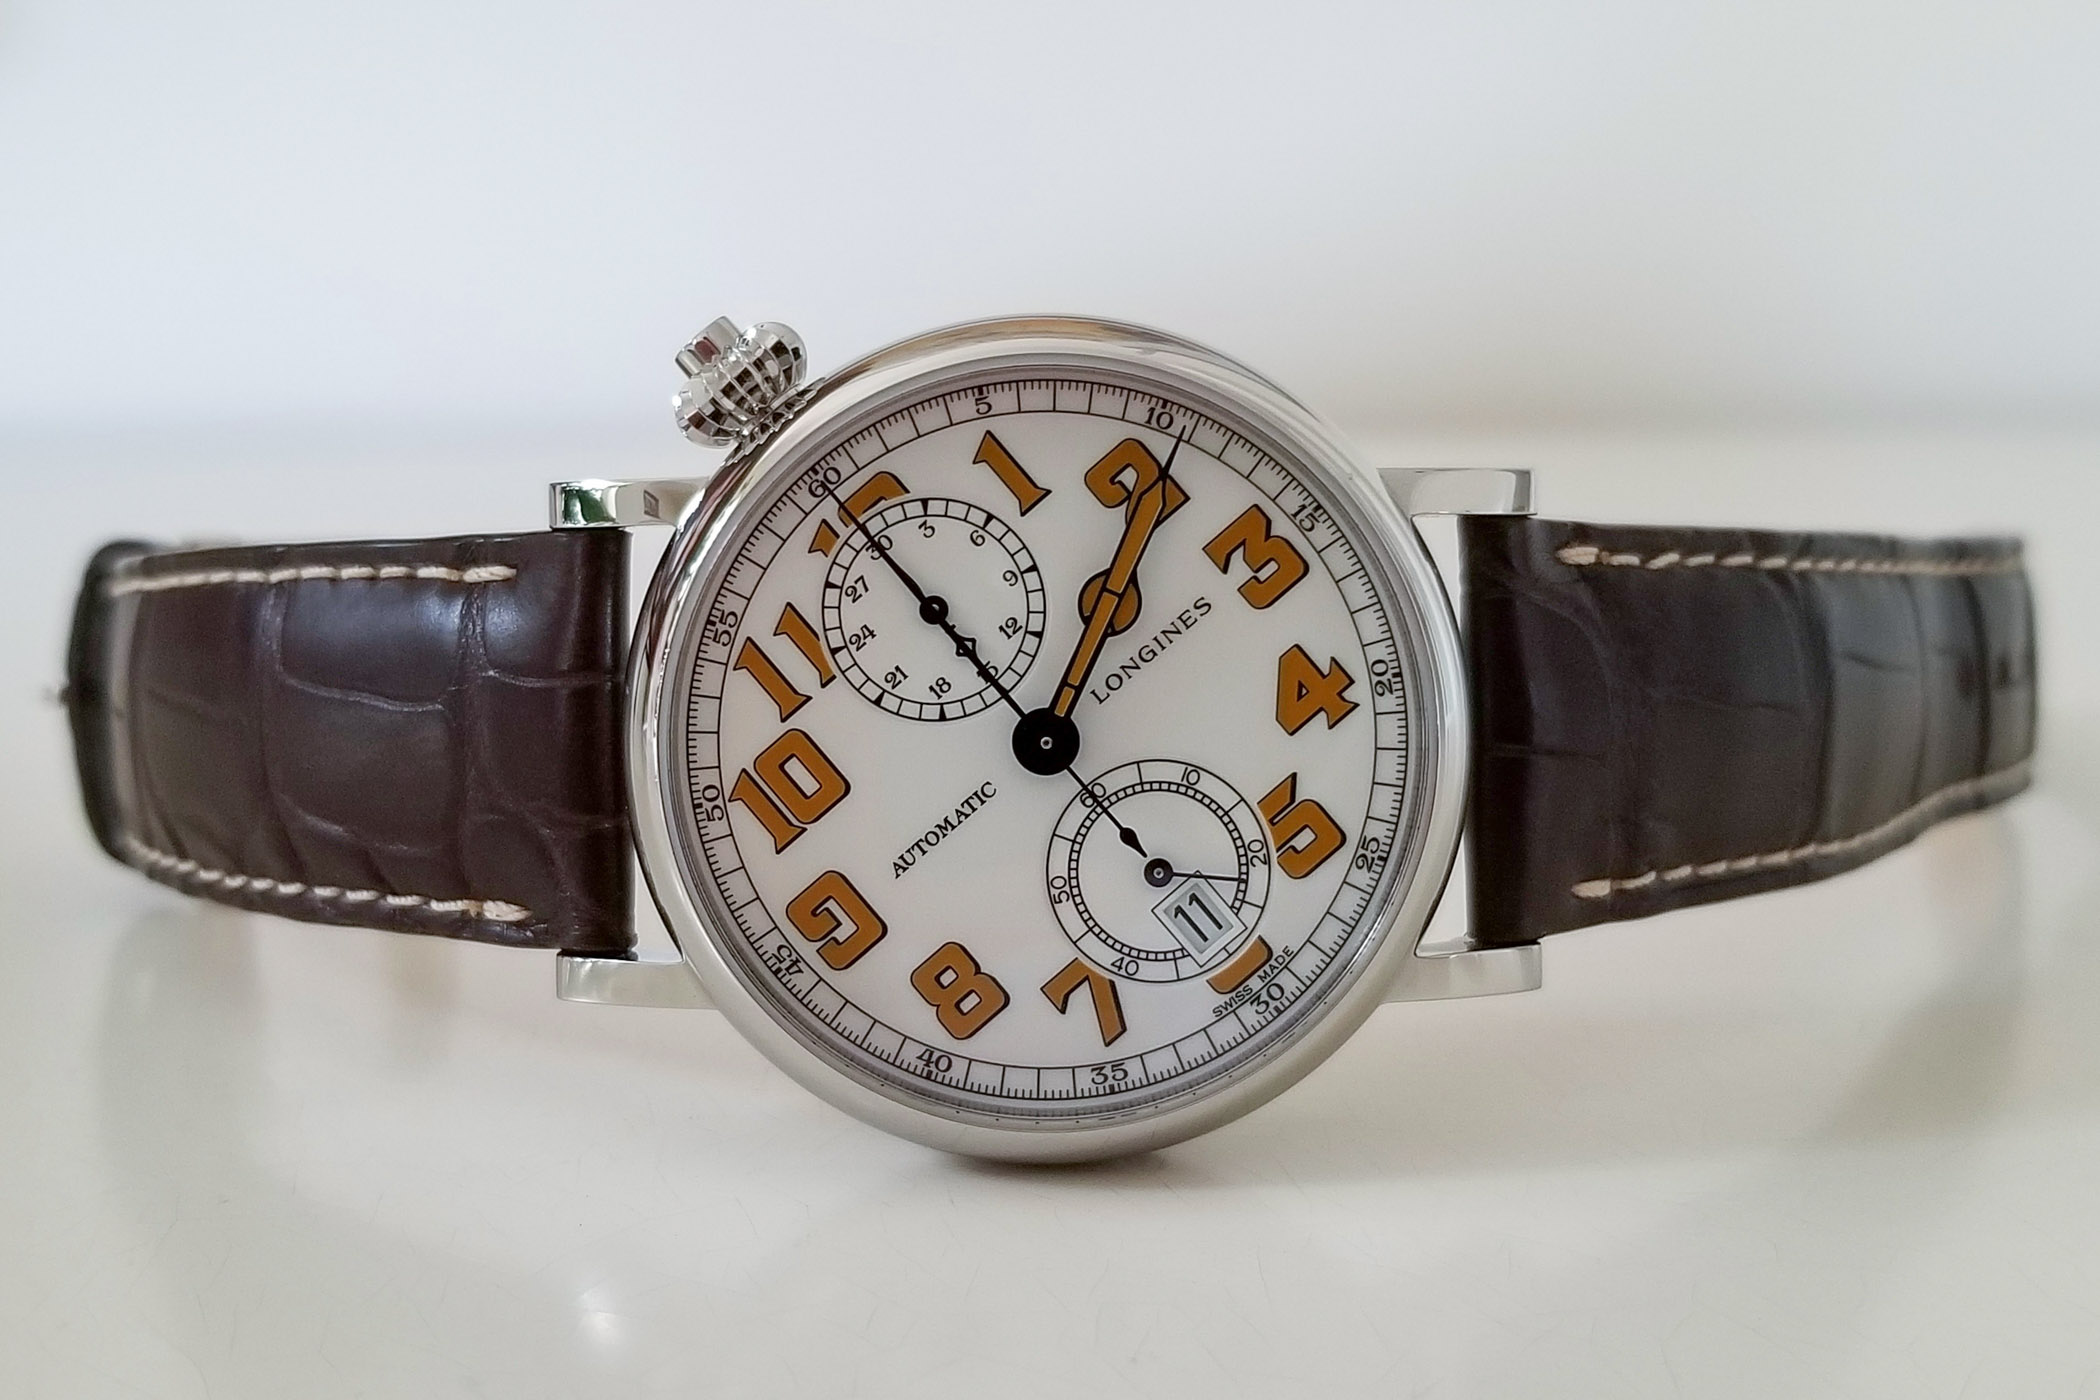 Longines Avigation Type A-7 1935 Chronograph